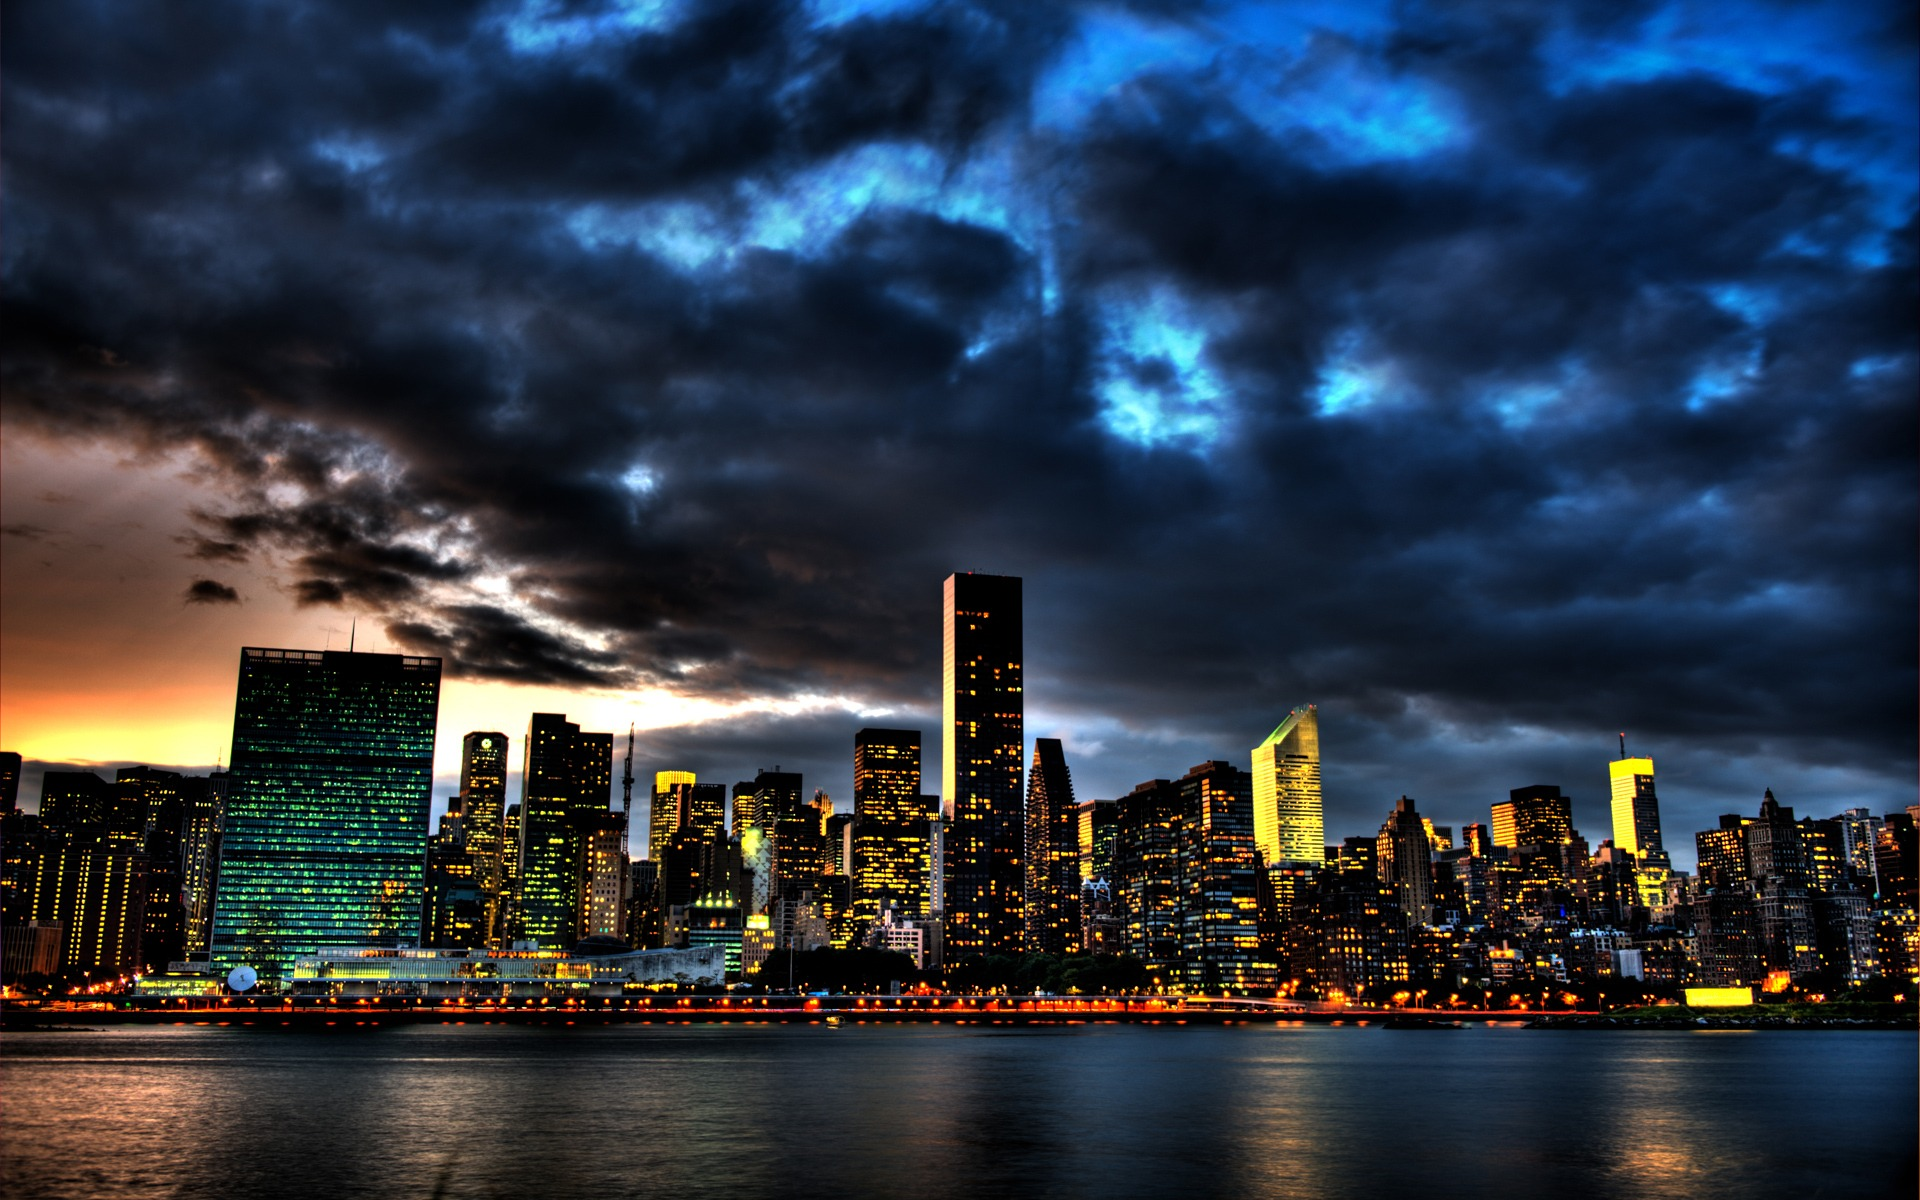 Night City Lights Wallpapers Pack – 3 – 38